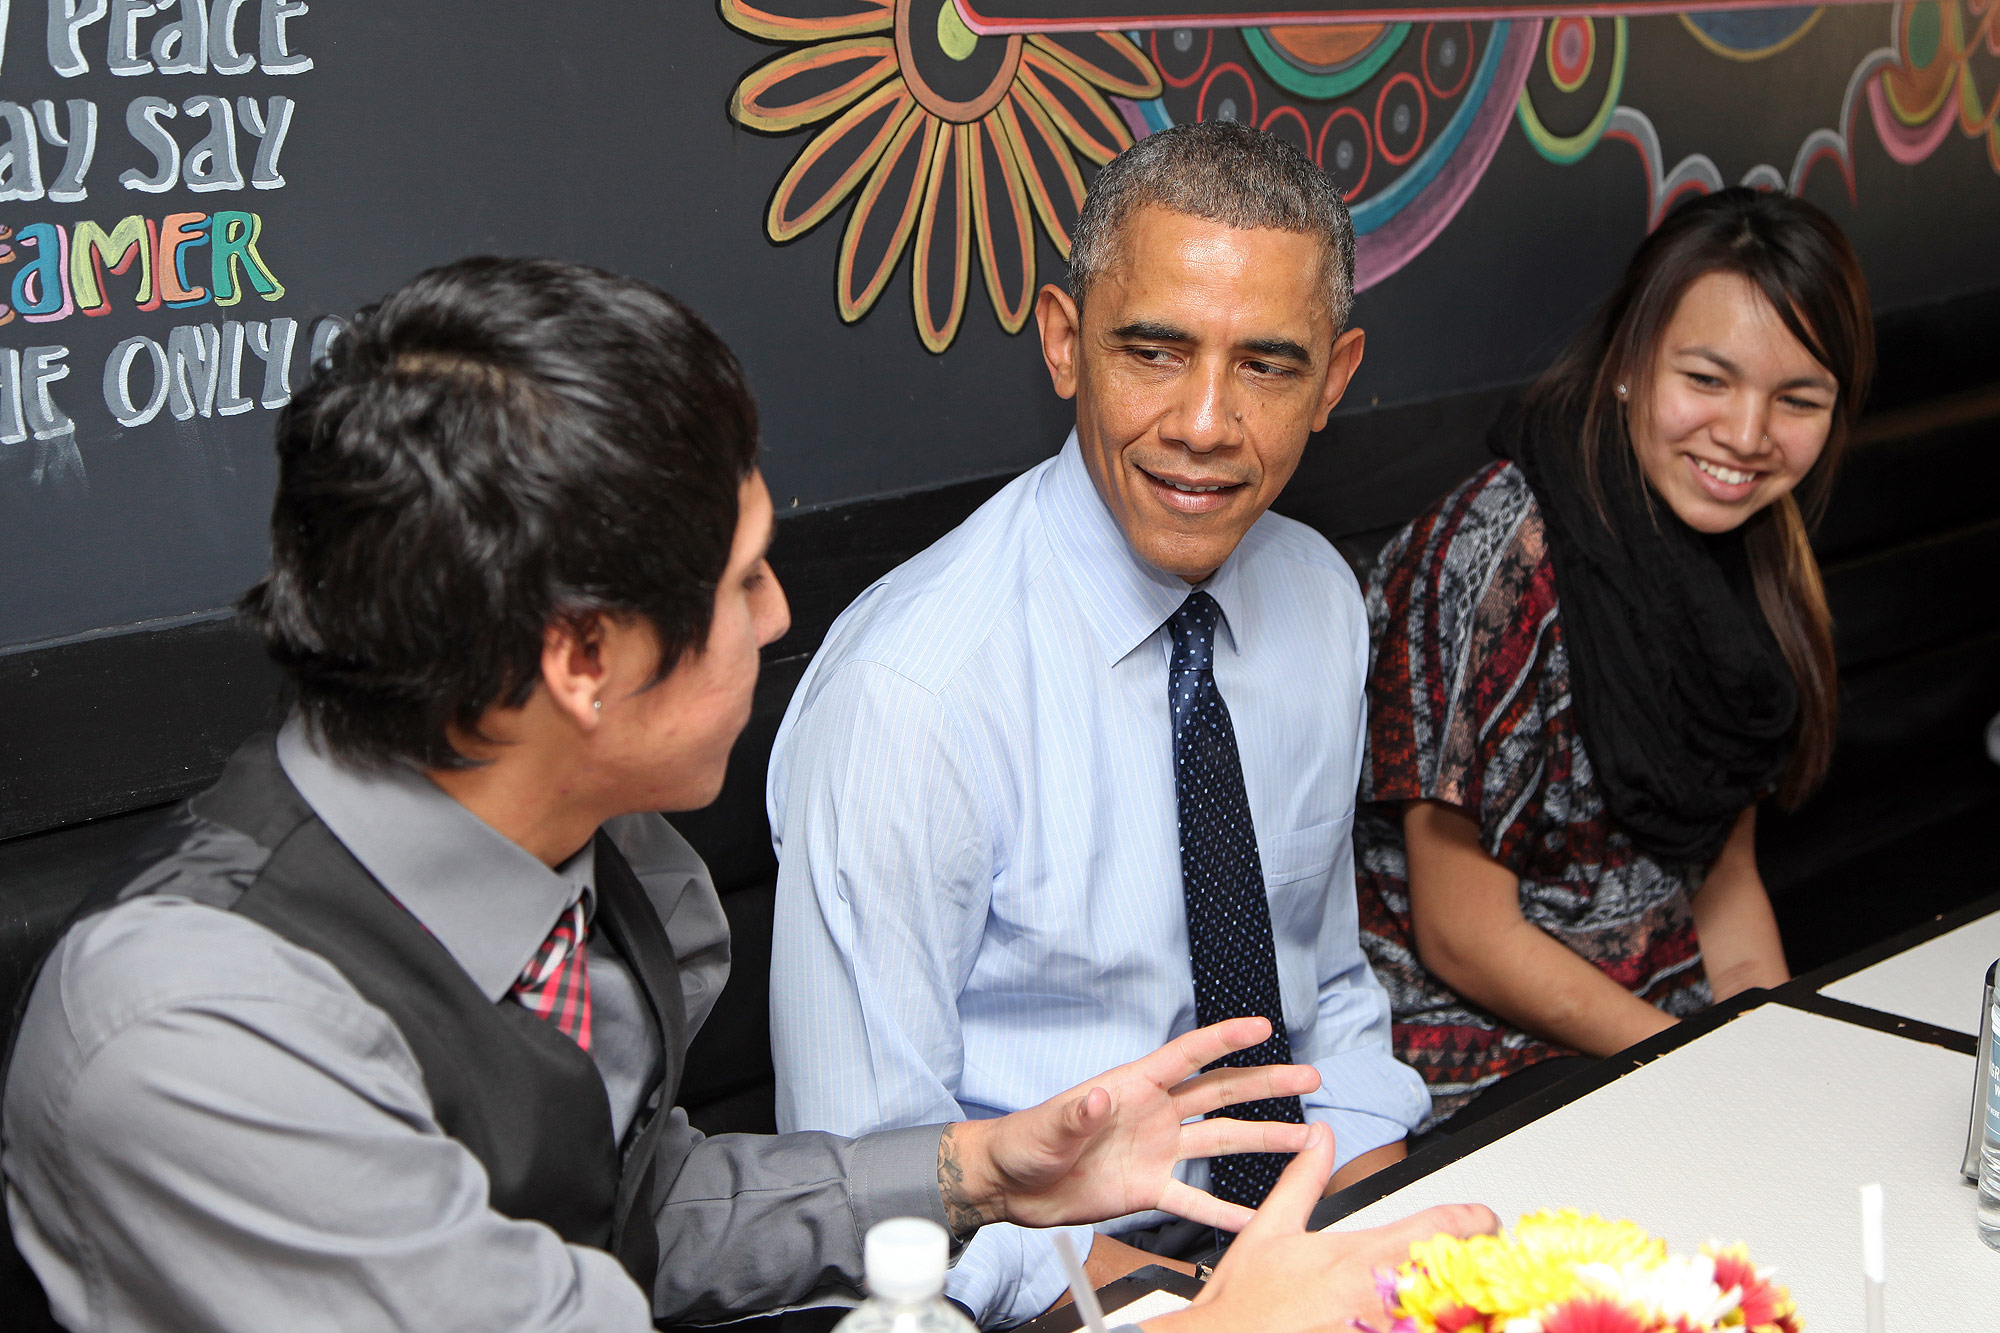 WASHINGTON, DC - NOVEMBER 20: U.S. President Barack Obama has lunch with Standing Rock Sioux Tribal Youth at We, The Pizza/Good Stuff Eatery following an Oval Office greeting on November 20, 2014 in Washington, DC. President Obama invited the youth group to visit the White House during a trip to the Standing Rock Sioux Reservation in Cannonball, North Dakota in June.